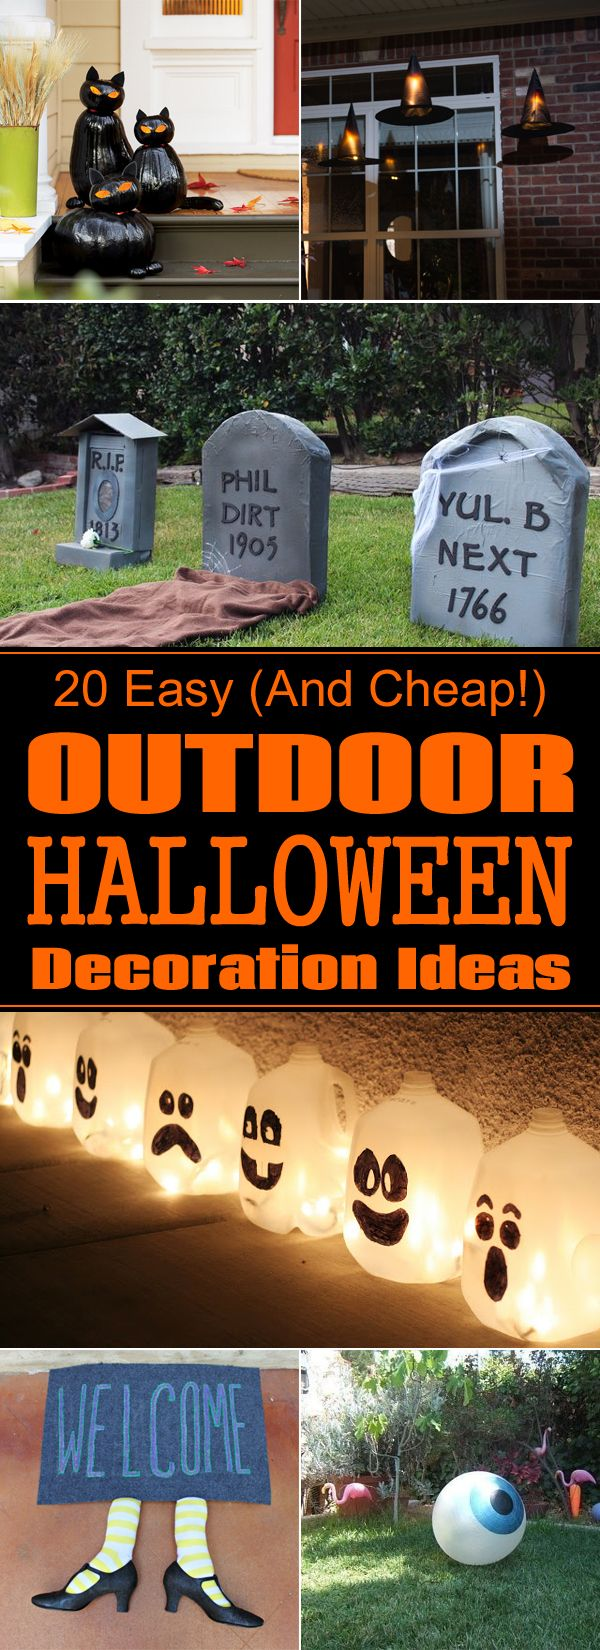 20 easy and cheap diy outdoor halloween decoration ideas - Cute Cheap Halloween Decorations